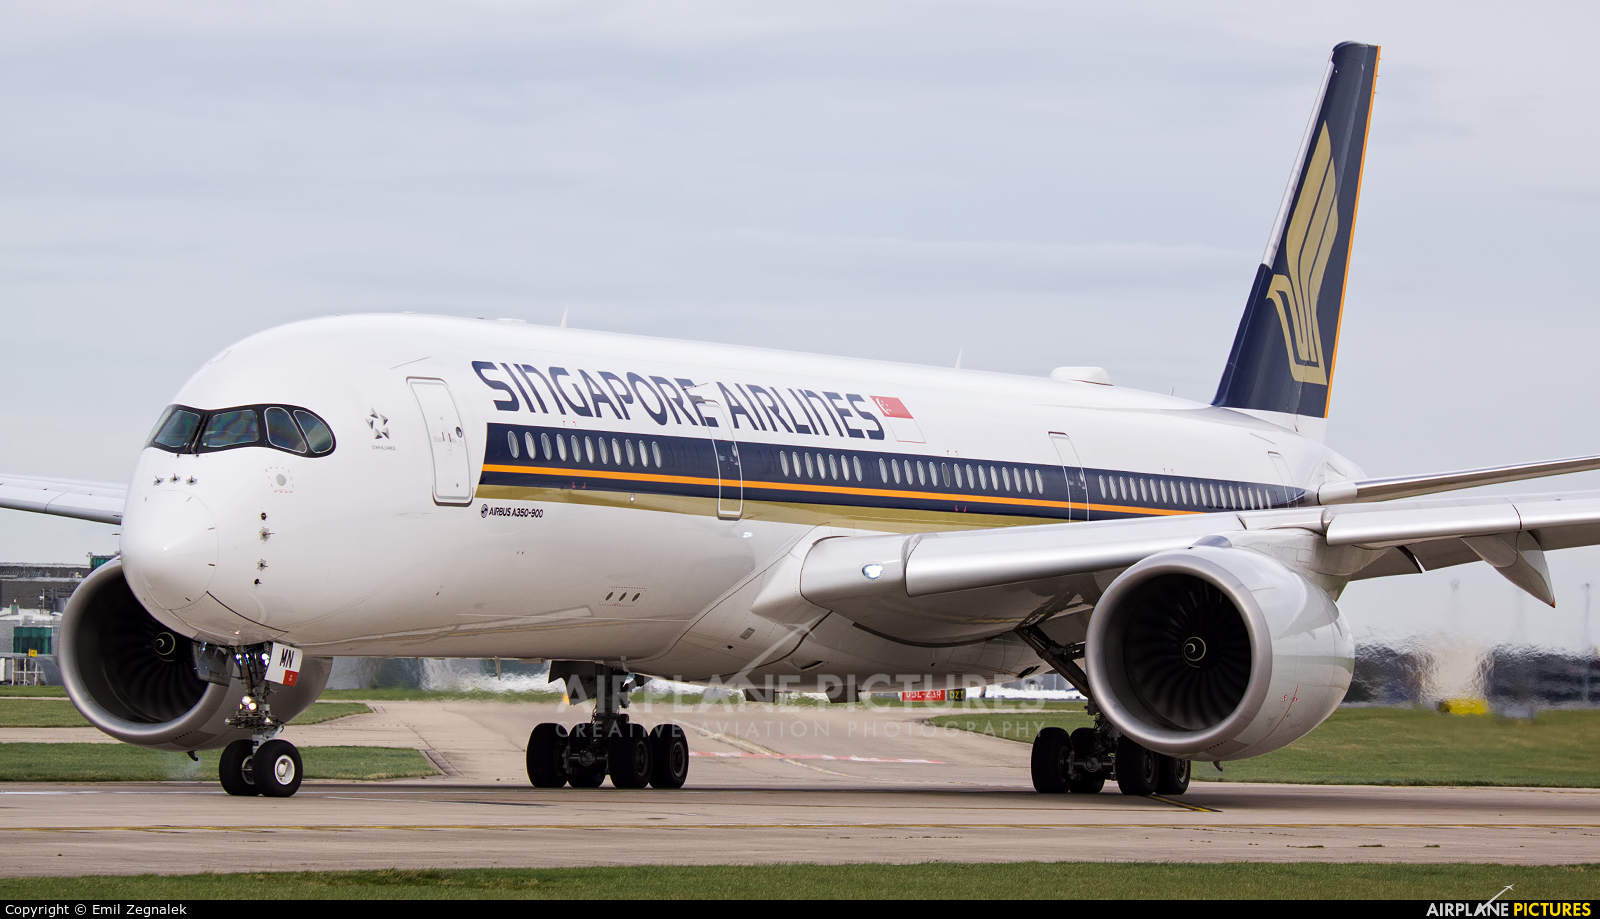 Singapore Airlines 9V-SMN aircraft at Manchester